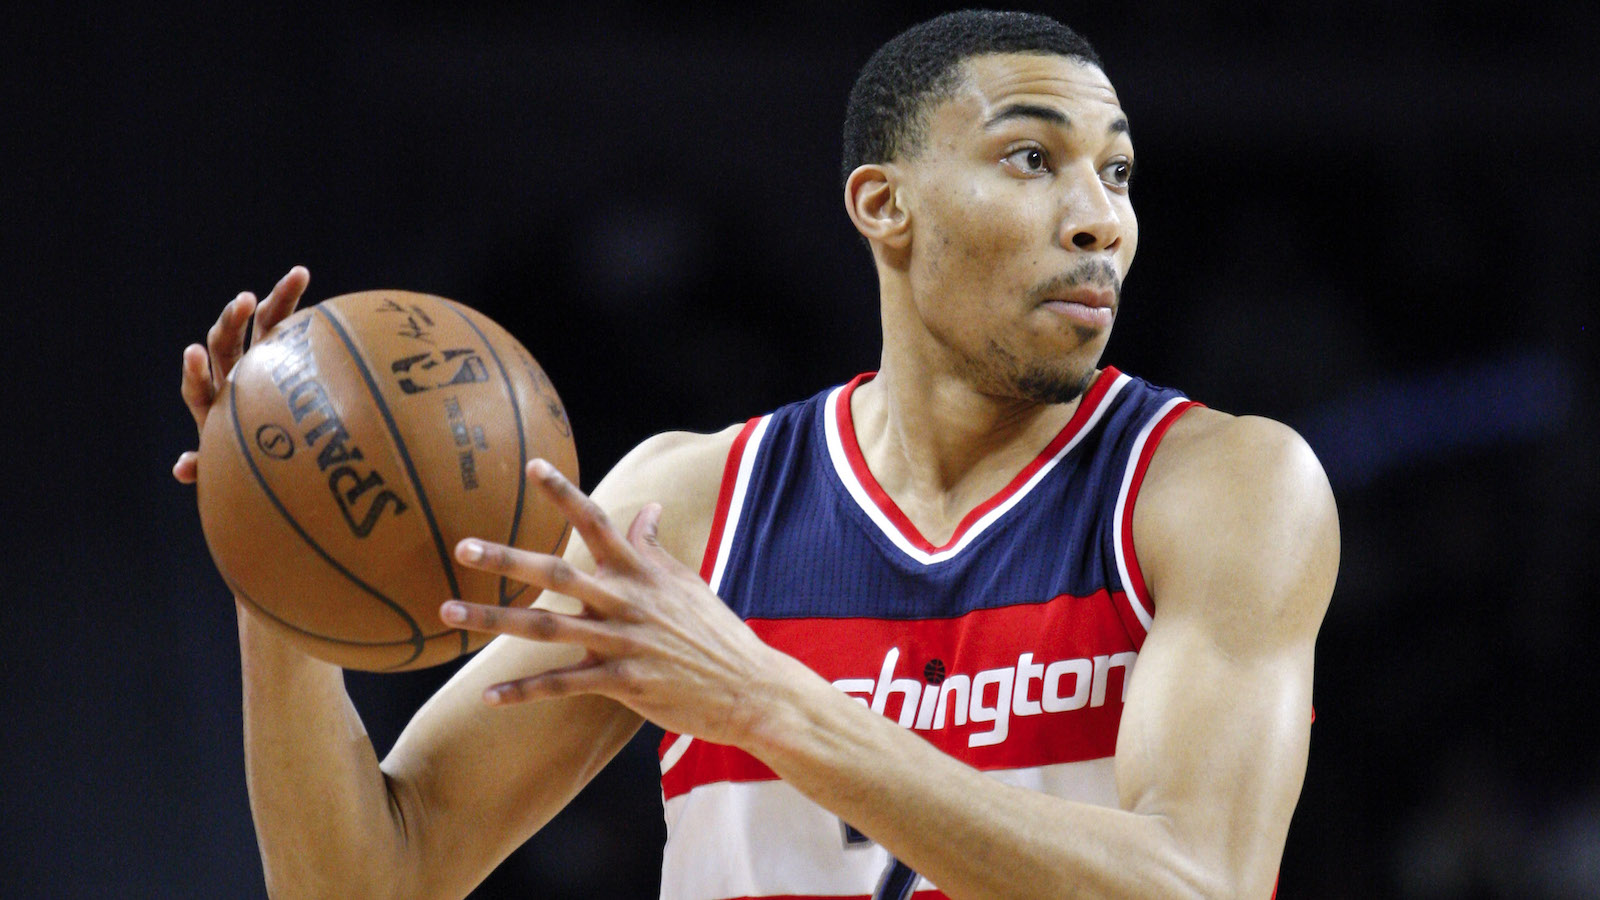 Apr 8, 2016; Auburn Hills, MI, USA; Washington Wizards forward Otto Porter Jr. (22) looks for an open man during the first quarter against the Detroit Pistons at The Palace of Auburn Hills. Mandatory Credit: Raj Mehta-USA TODAY Sports